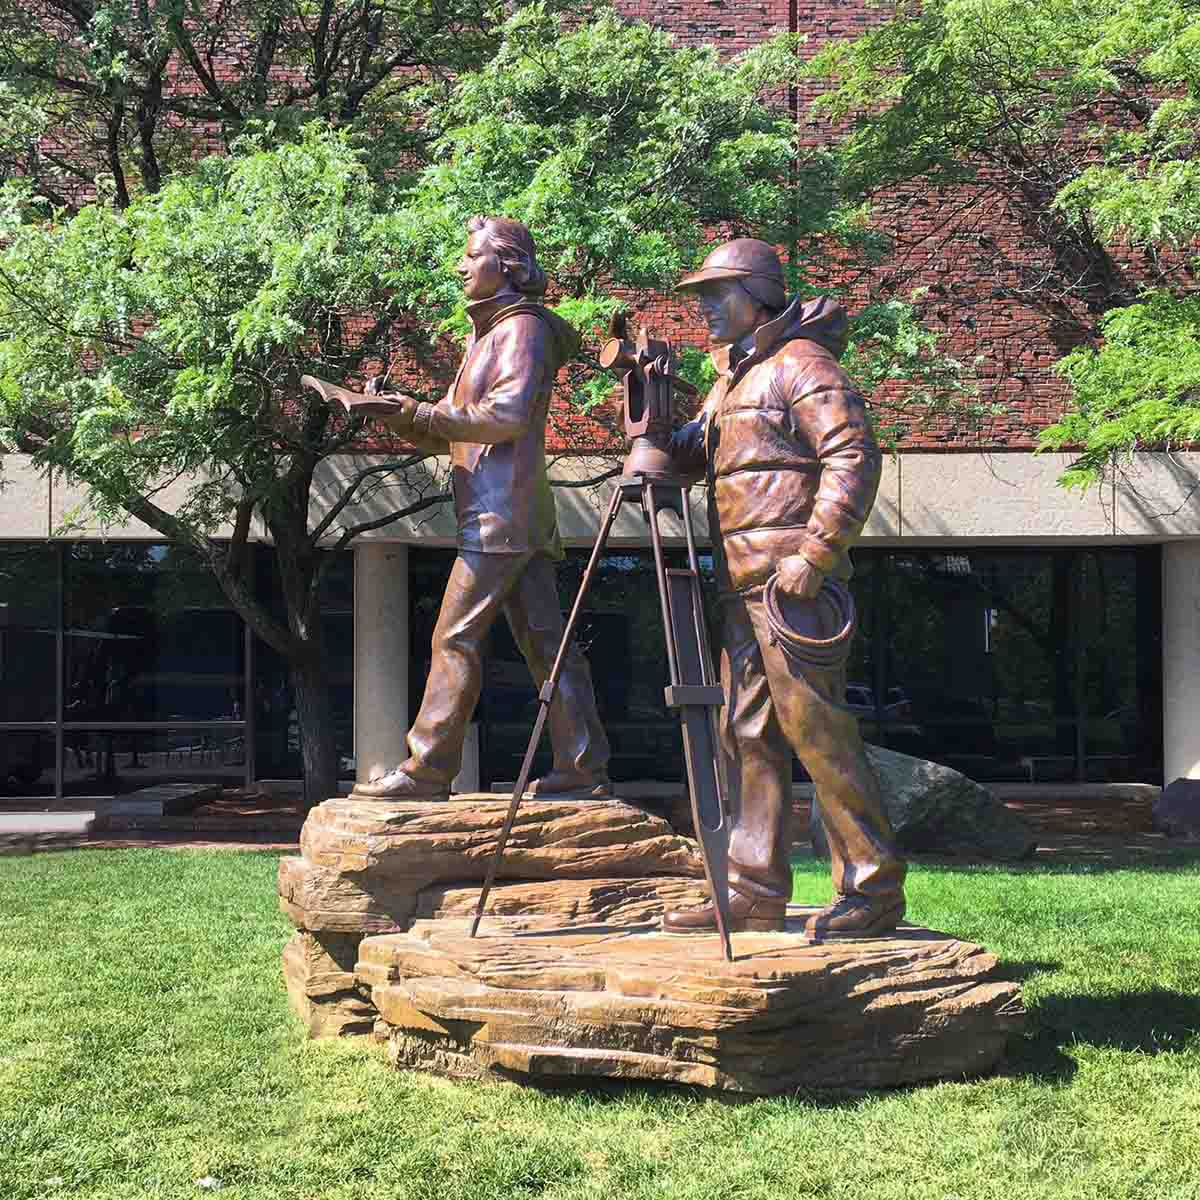 photo of bronze sculpture of man and woman in winter gear with theodolite on tripod and notepad standing on rock surface in front of a building on a green lawn